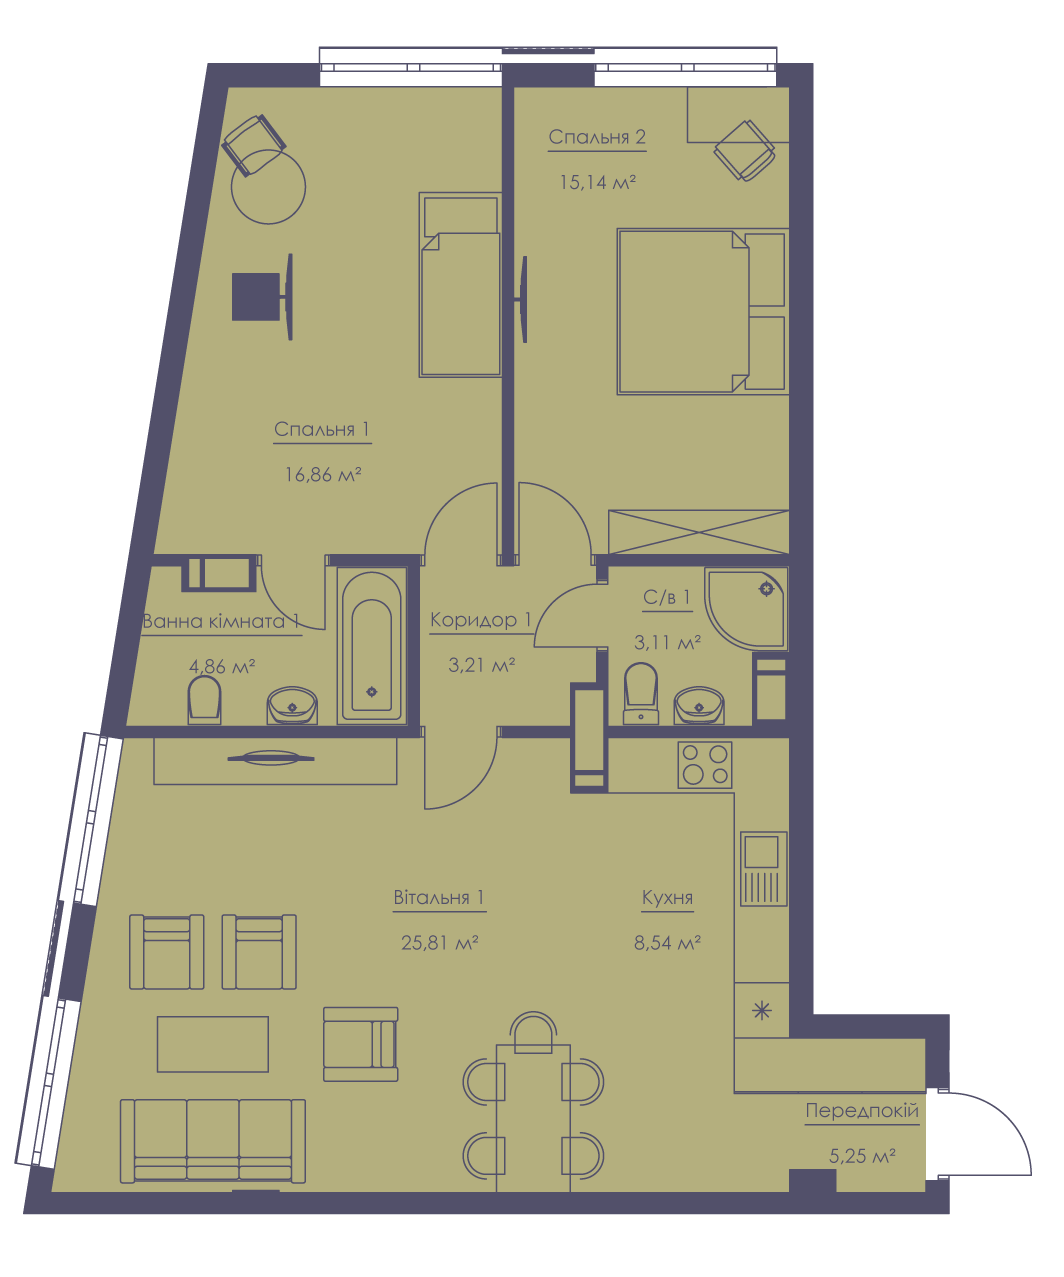 Apartment layout KV_107_3n_1_1_7-1